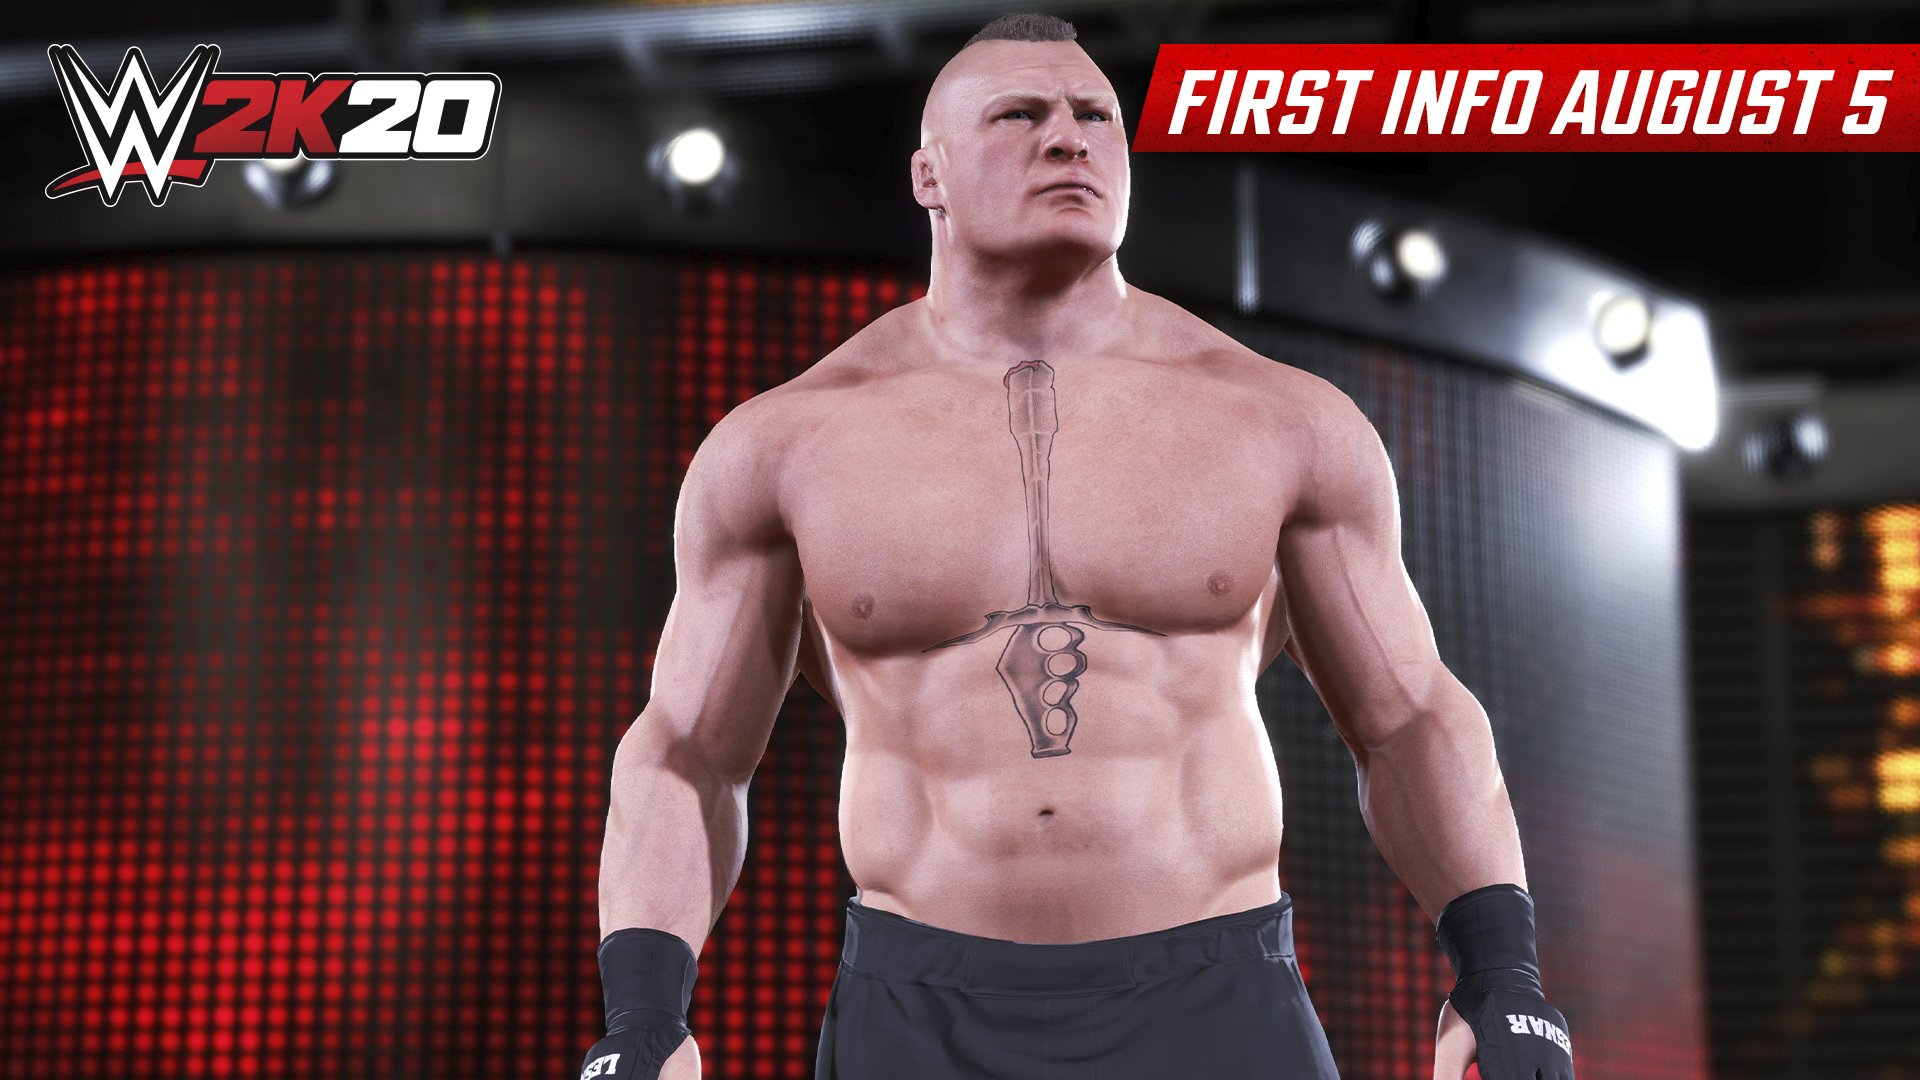 WWE 2K20 screenshot.